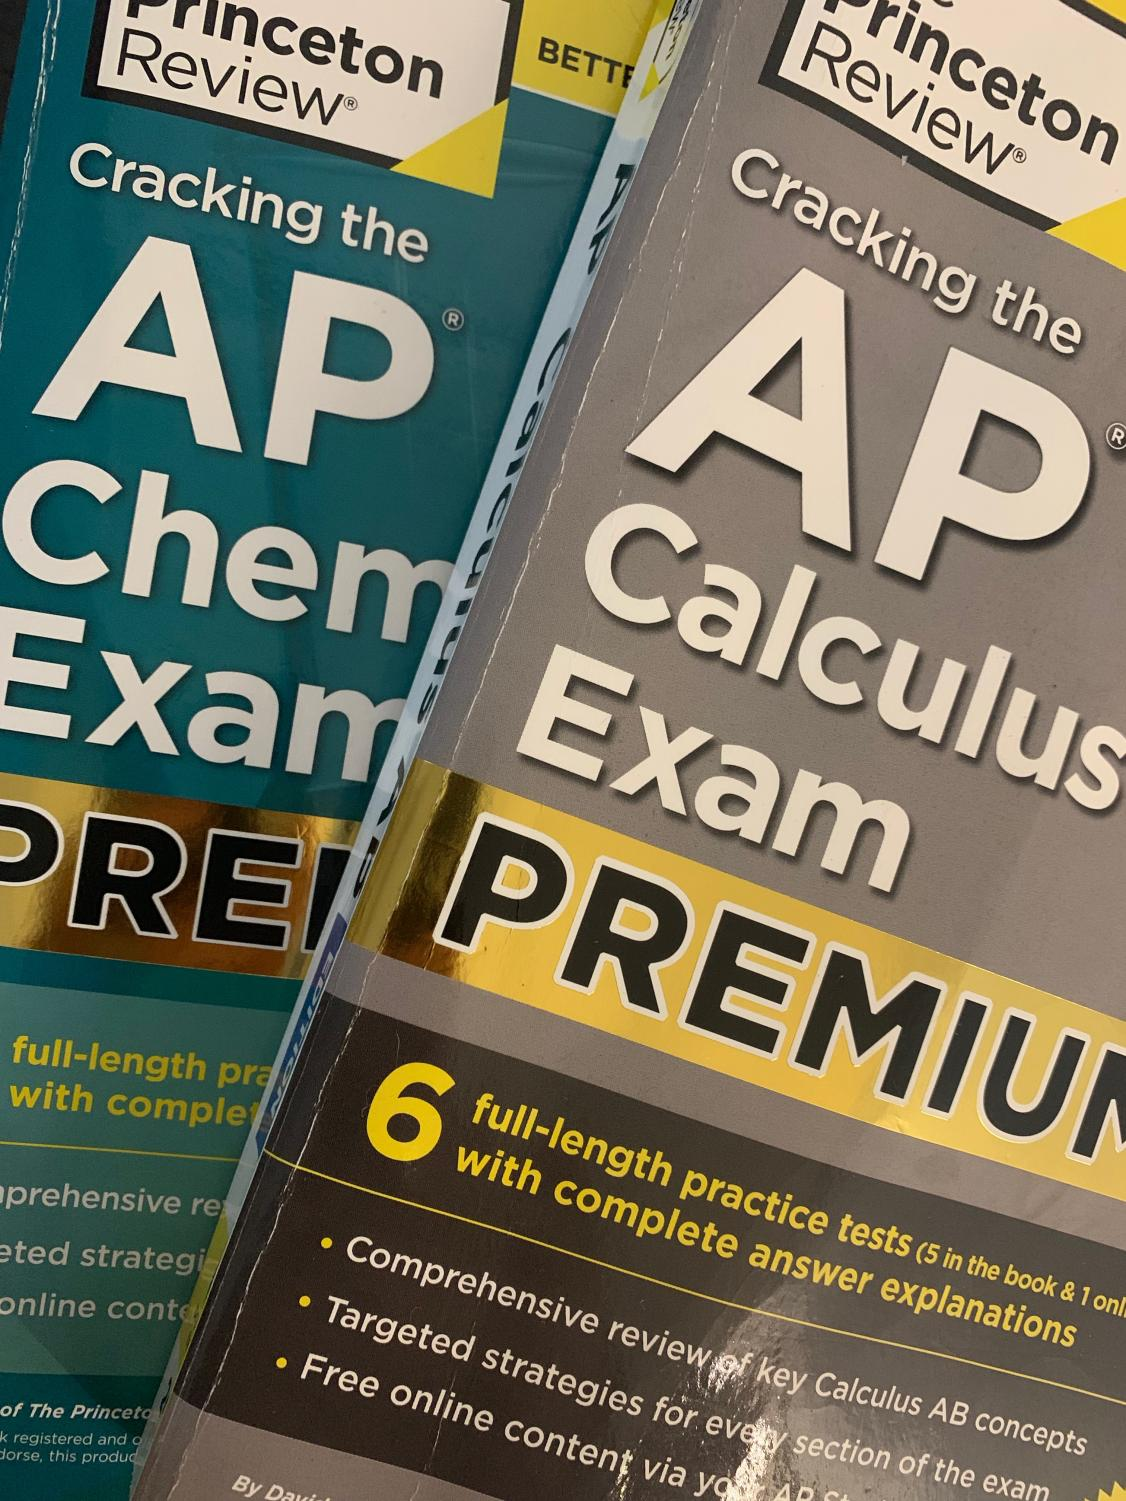 Students have used their review books to study for their mock exams. Now, they will be used to prepare the last few details for the real AP exams,